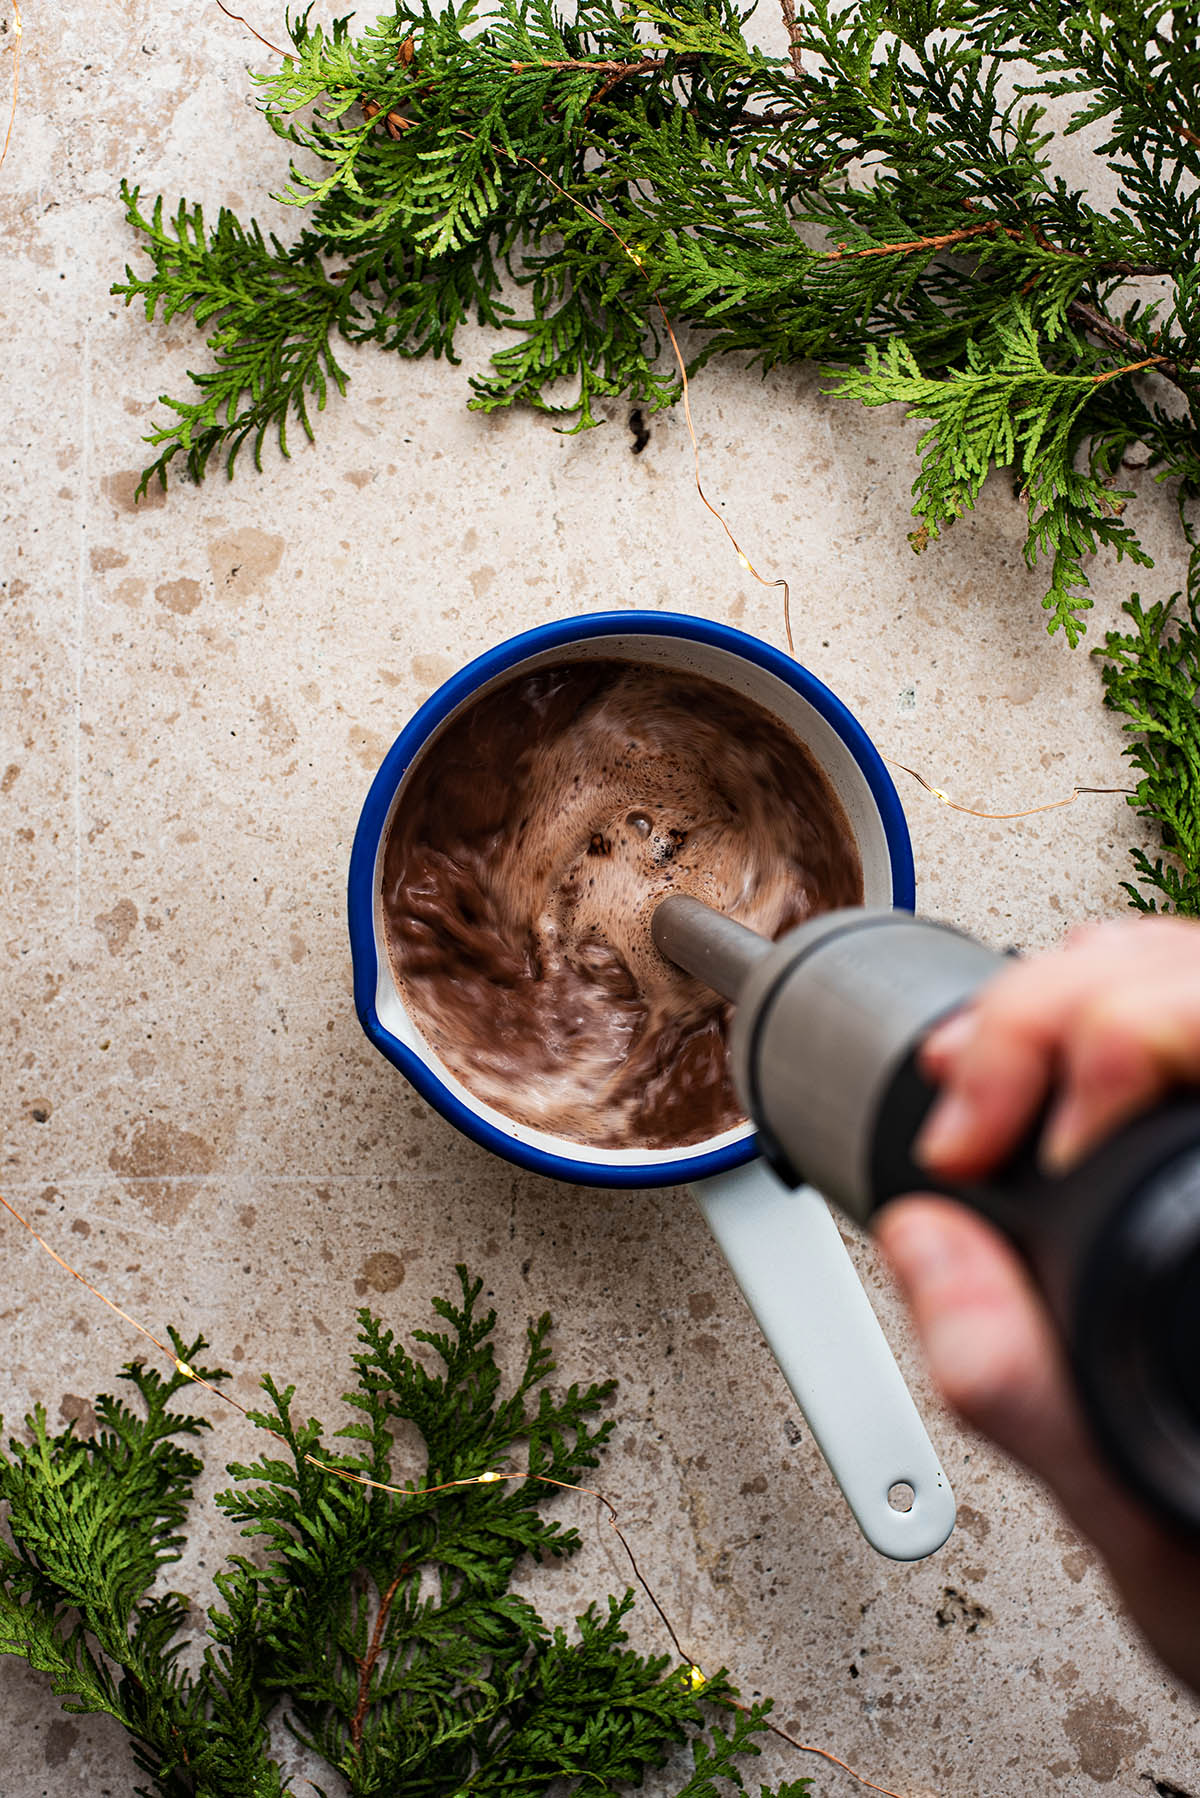 Hot chocolate being blended with an immersion blender.